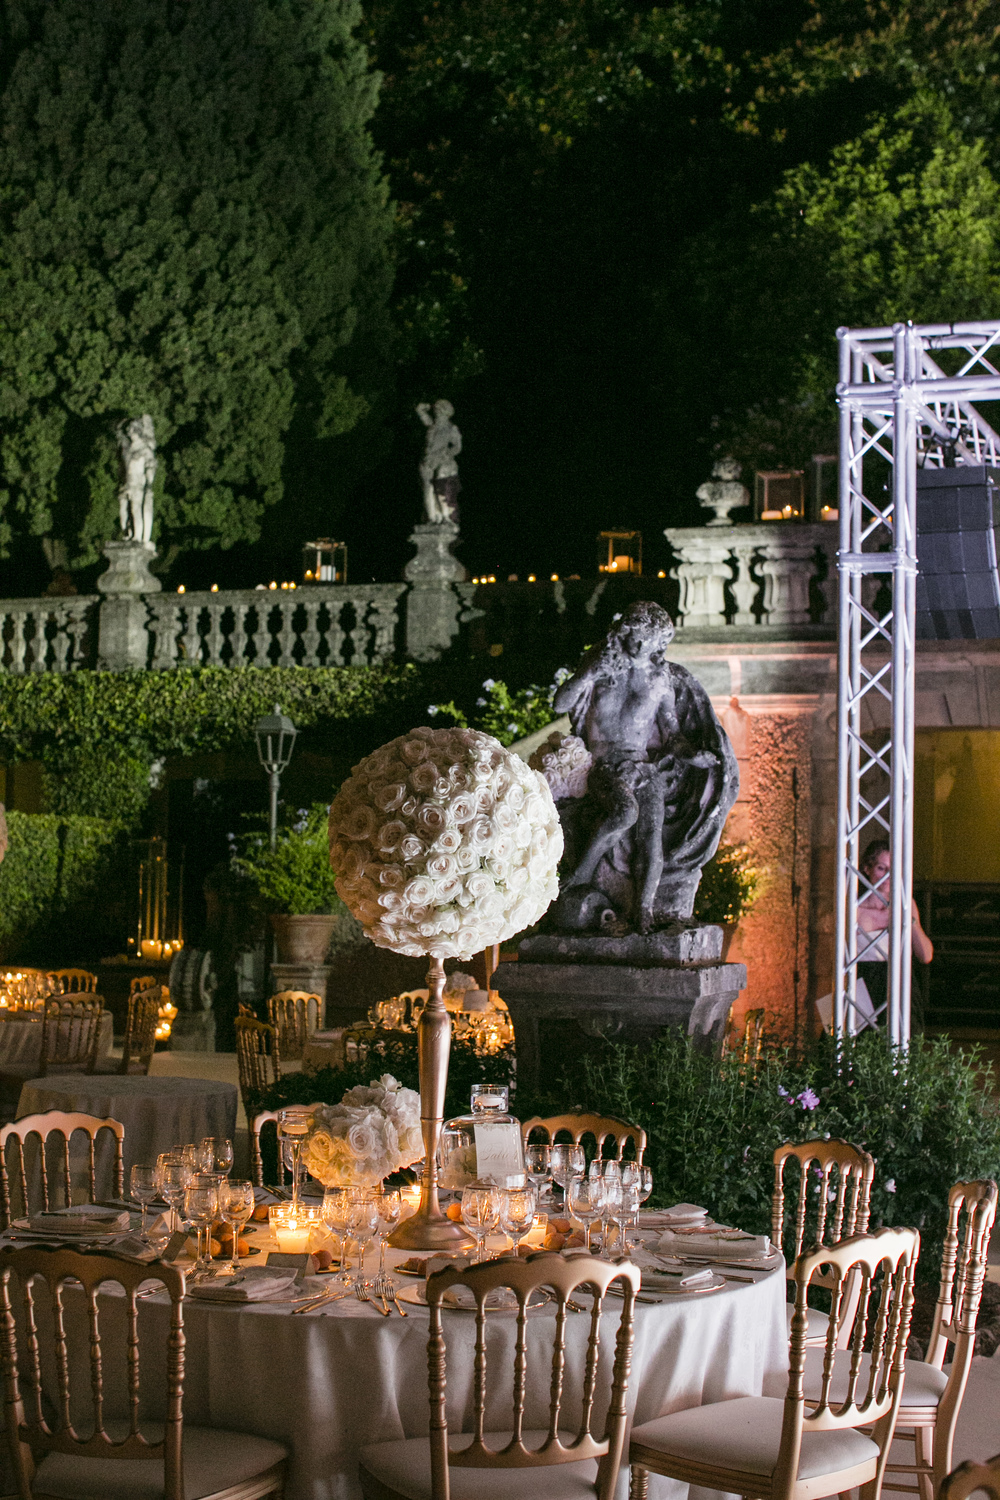 Ceci_New_York_Wedding_Lake_Como_Italy_Luxury_Style_Real_Bride_103.jpg